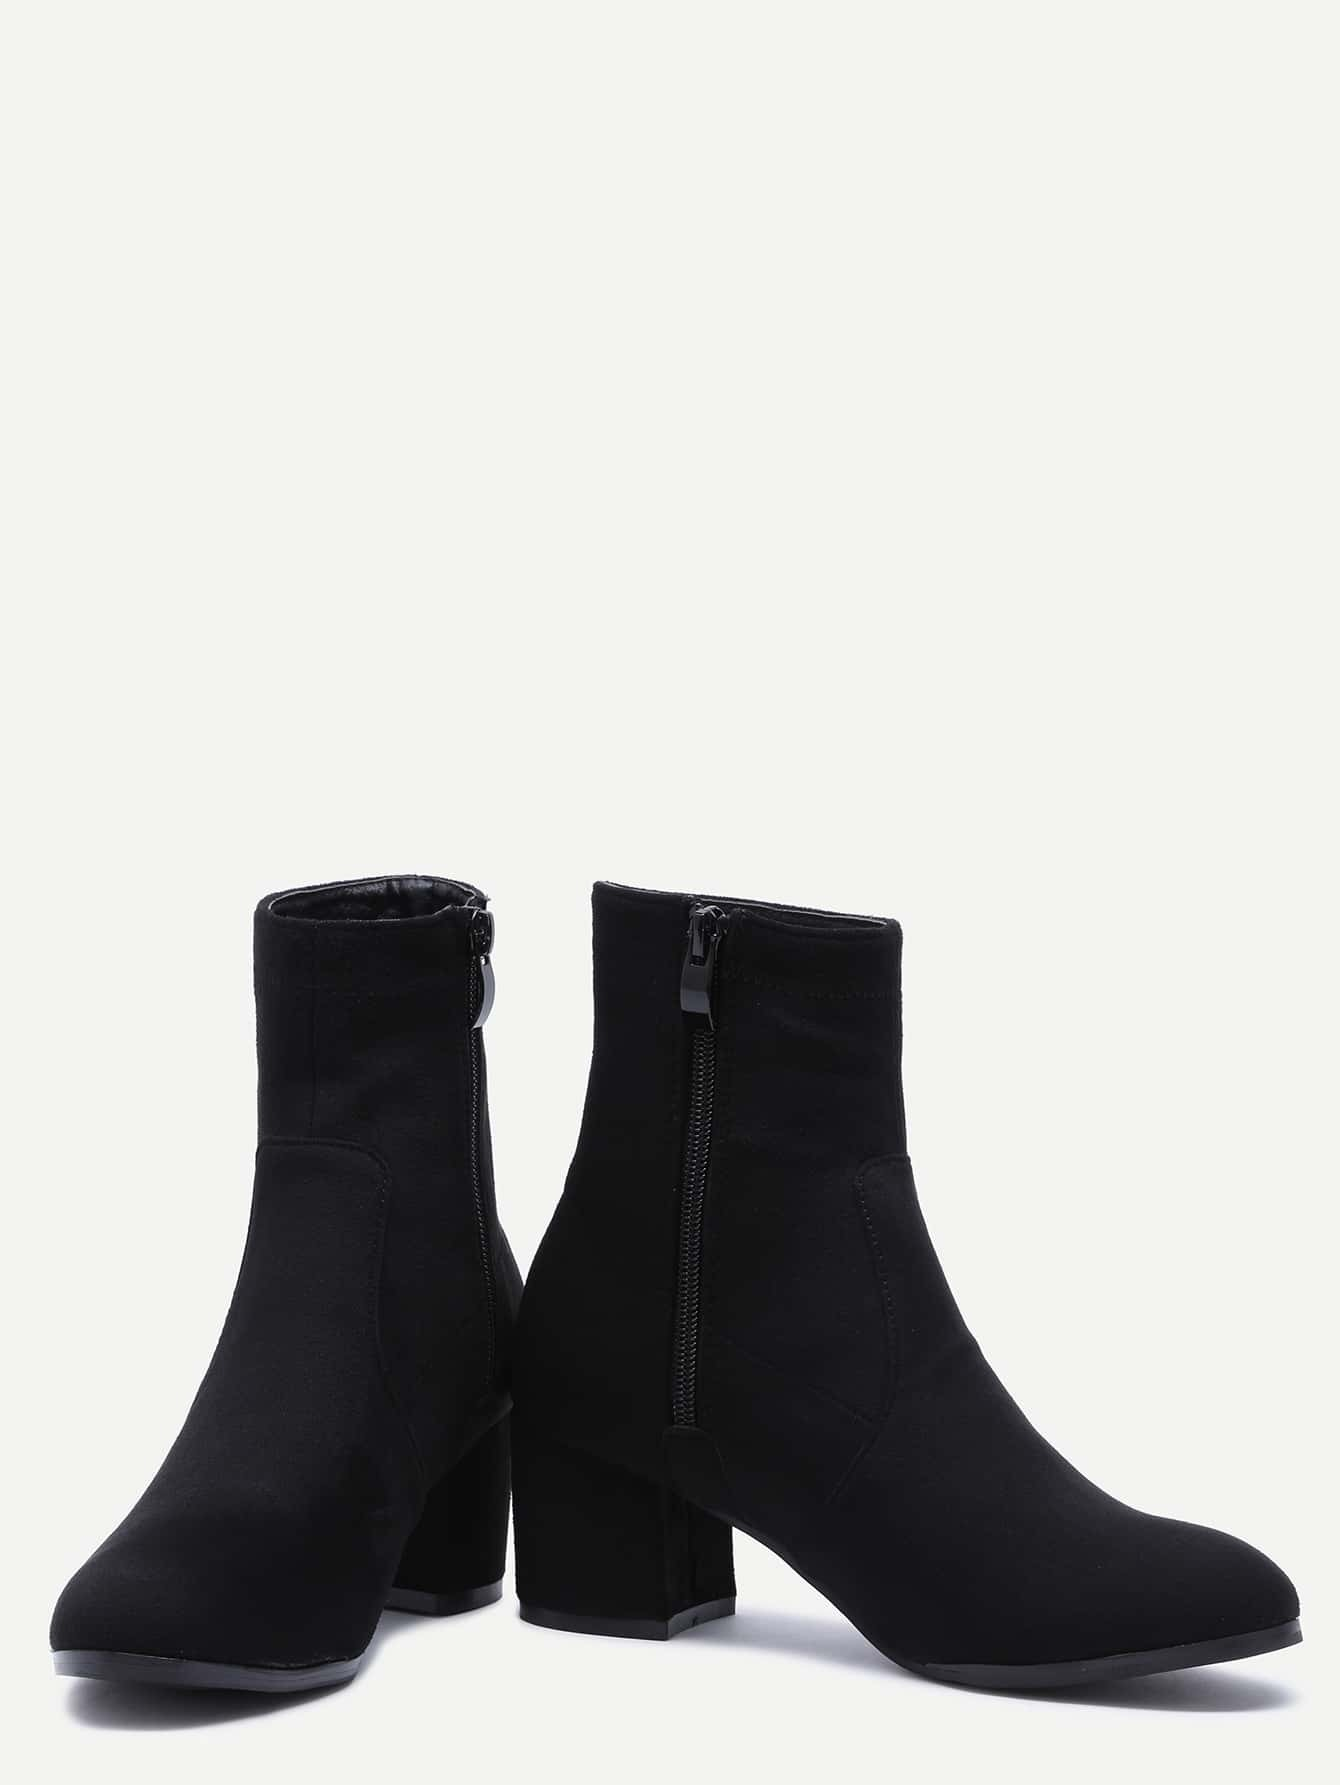 Many stylish booties are found right here platform booties, Chunky Booties Platform Boots, Heel Booties, Wedge Booties, Studded Booties Lace Up Booties, Peep Toe Booties, Heel Less Booties, Leopard Print Booties and more.